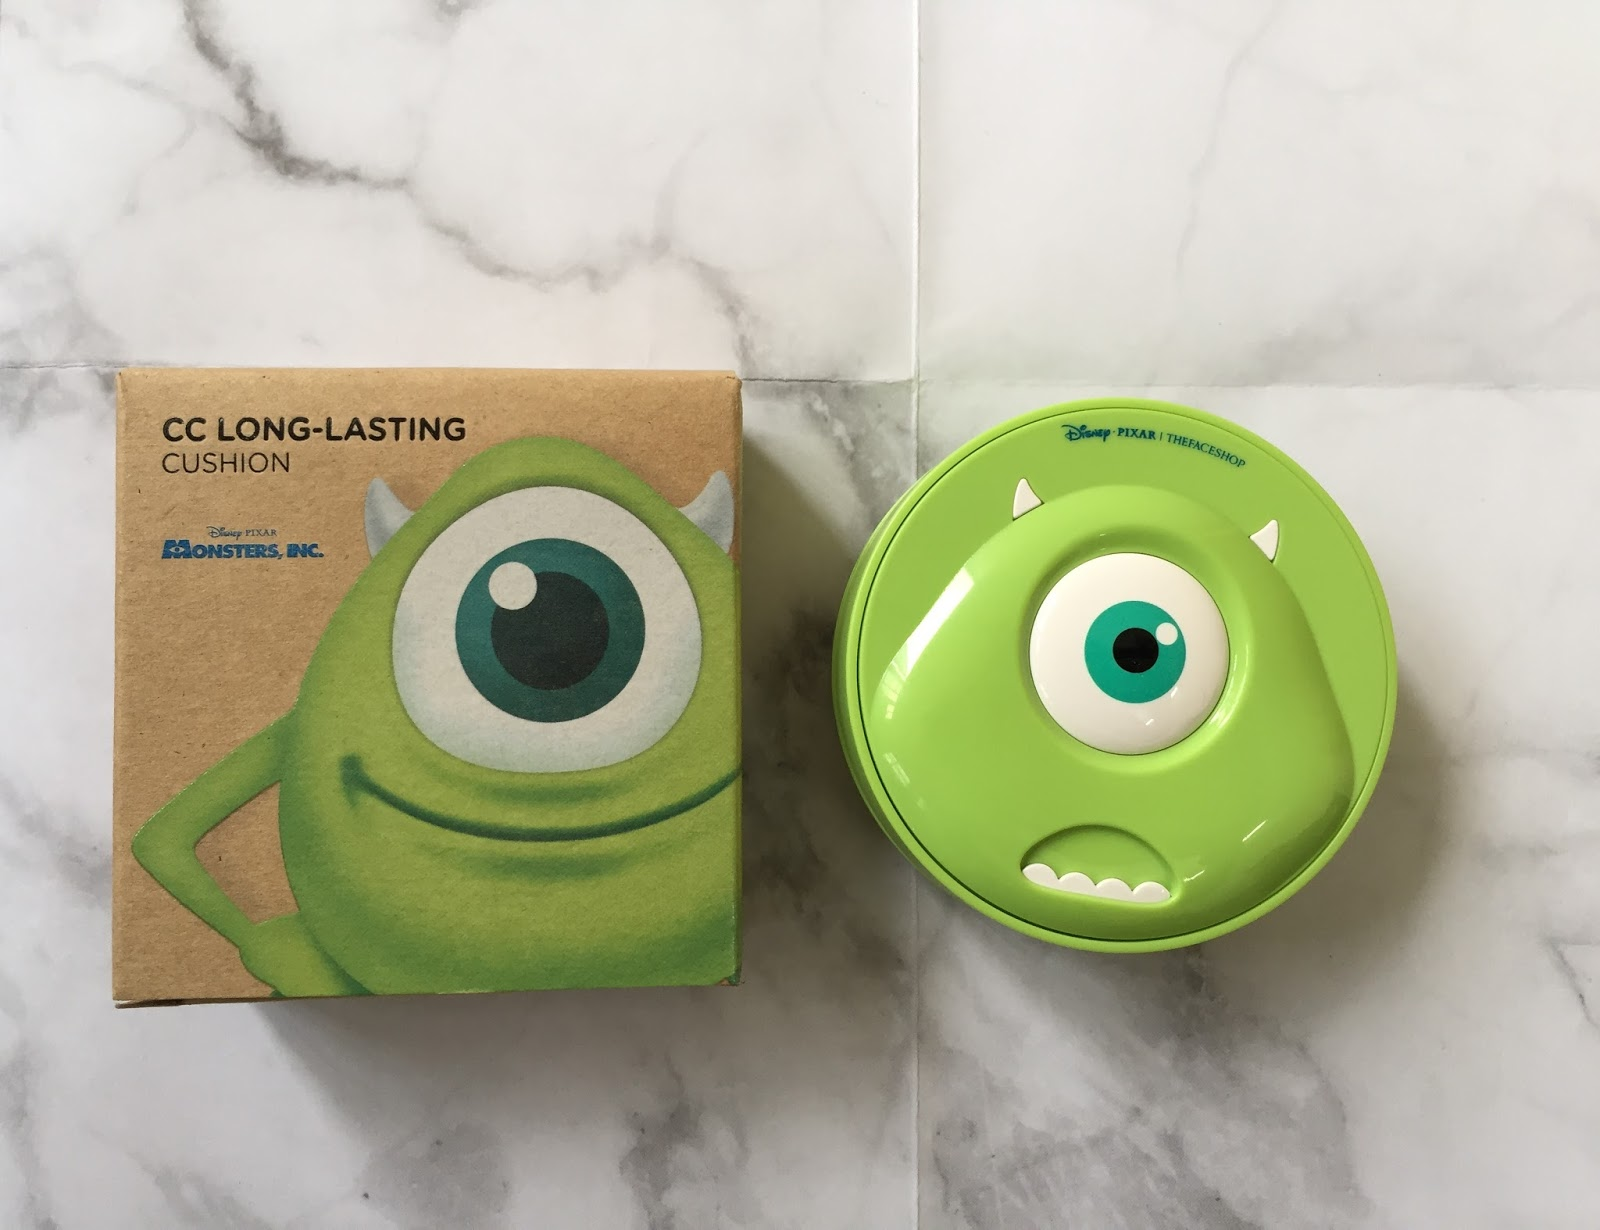 phan-nuoc-thefaceshop-cc-long-lasting-cushion-v201-monster-disney-01